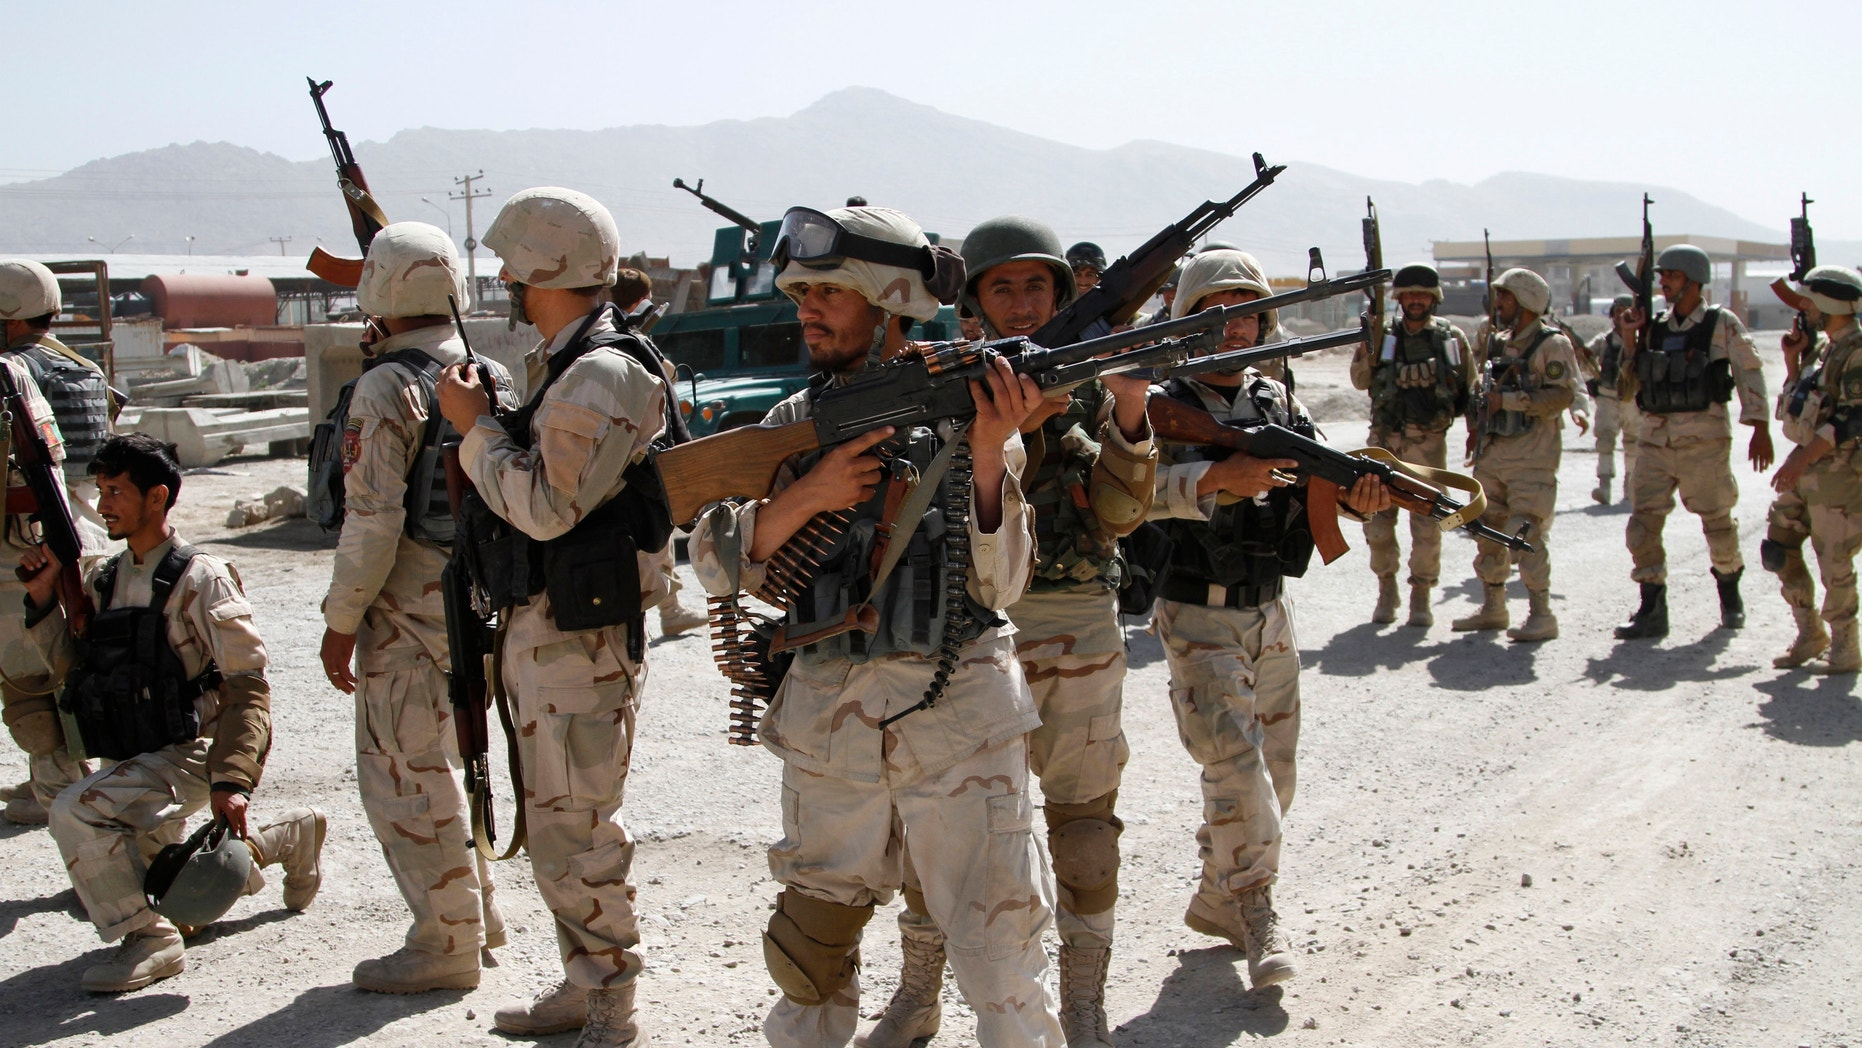 June, 10, 2013 - Afghan military soldiers stand guard as Taliban fighters attacked near Kabul airport, Afghanistan. 7 heavily armed Taliban insurgents launched a pre-dawn attack near Afghanistan's main airport, apparently targeting NATO's airport headquarters.